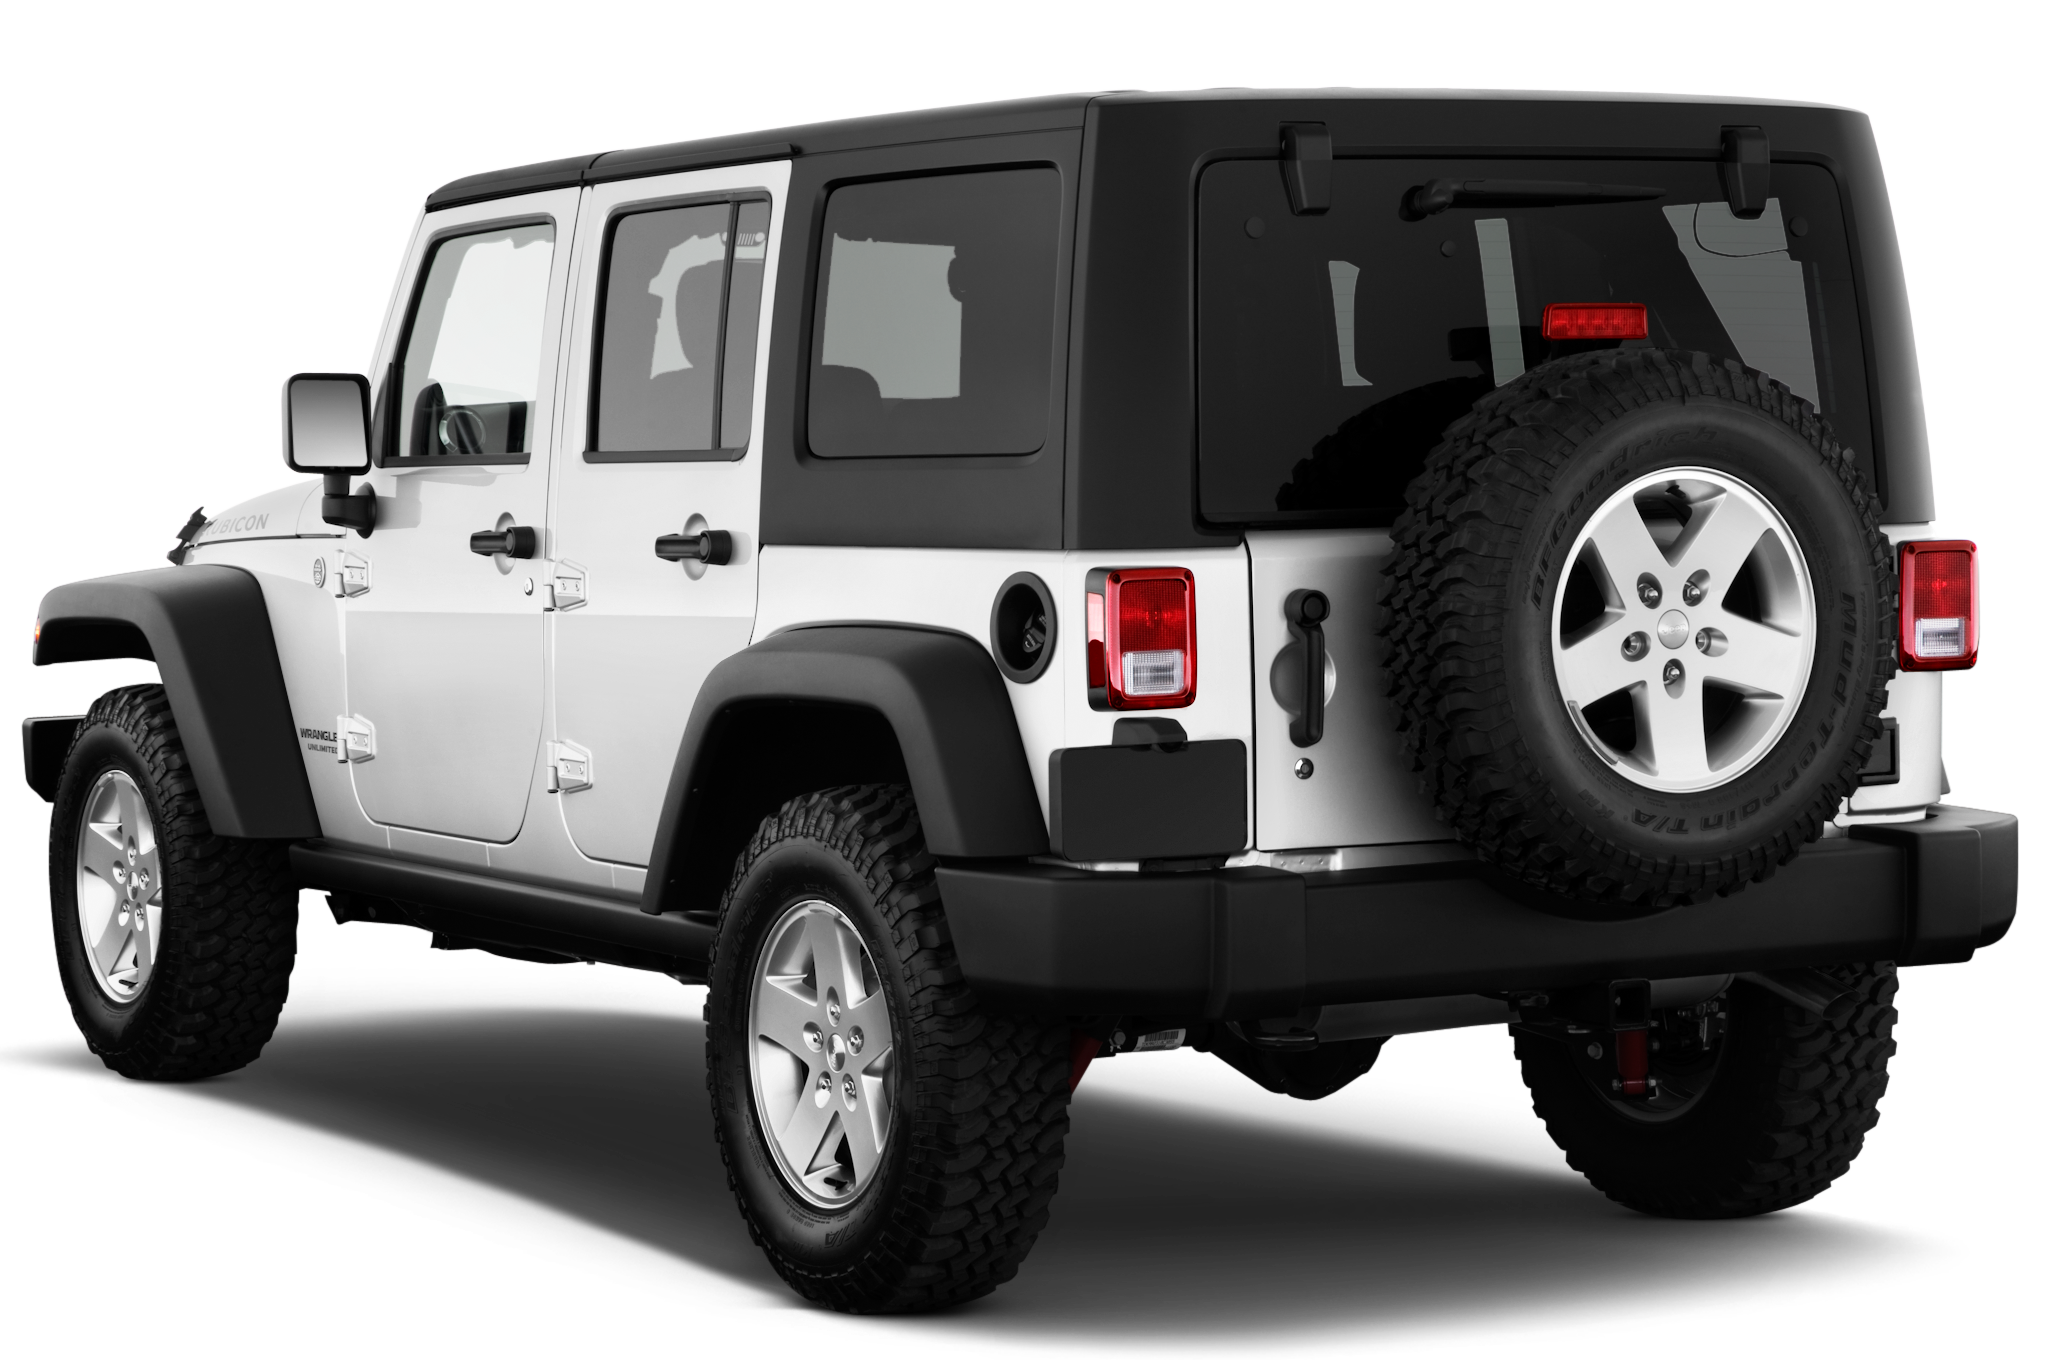 Jeep Png Image Jeep Images Jeep Fiat Chrysler Automobiles